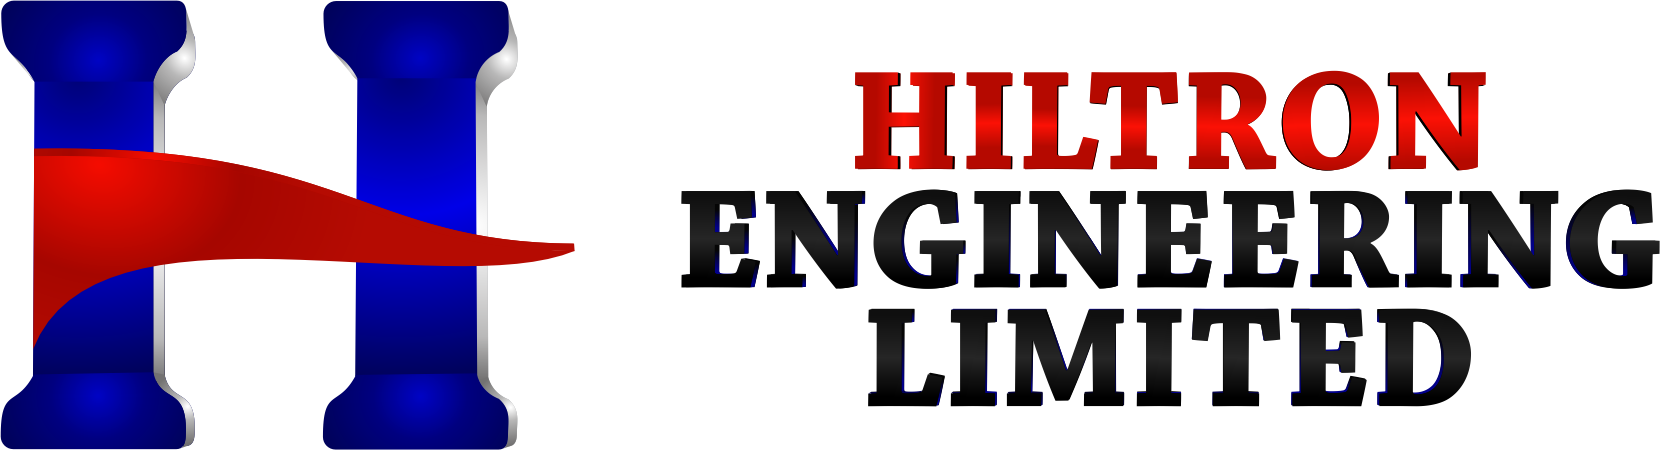 Hiltron Engineering